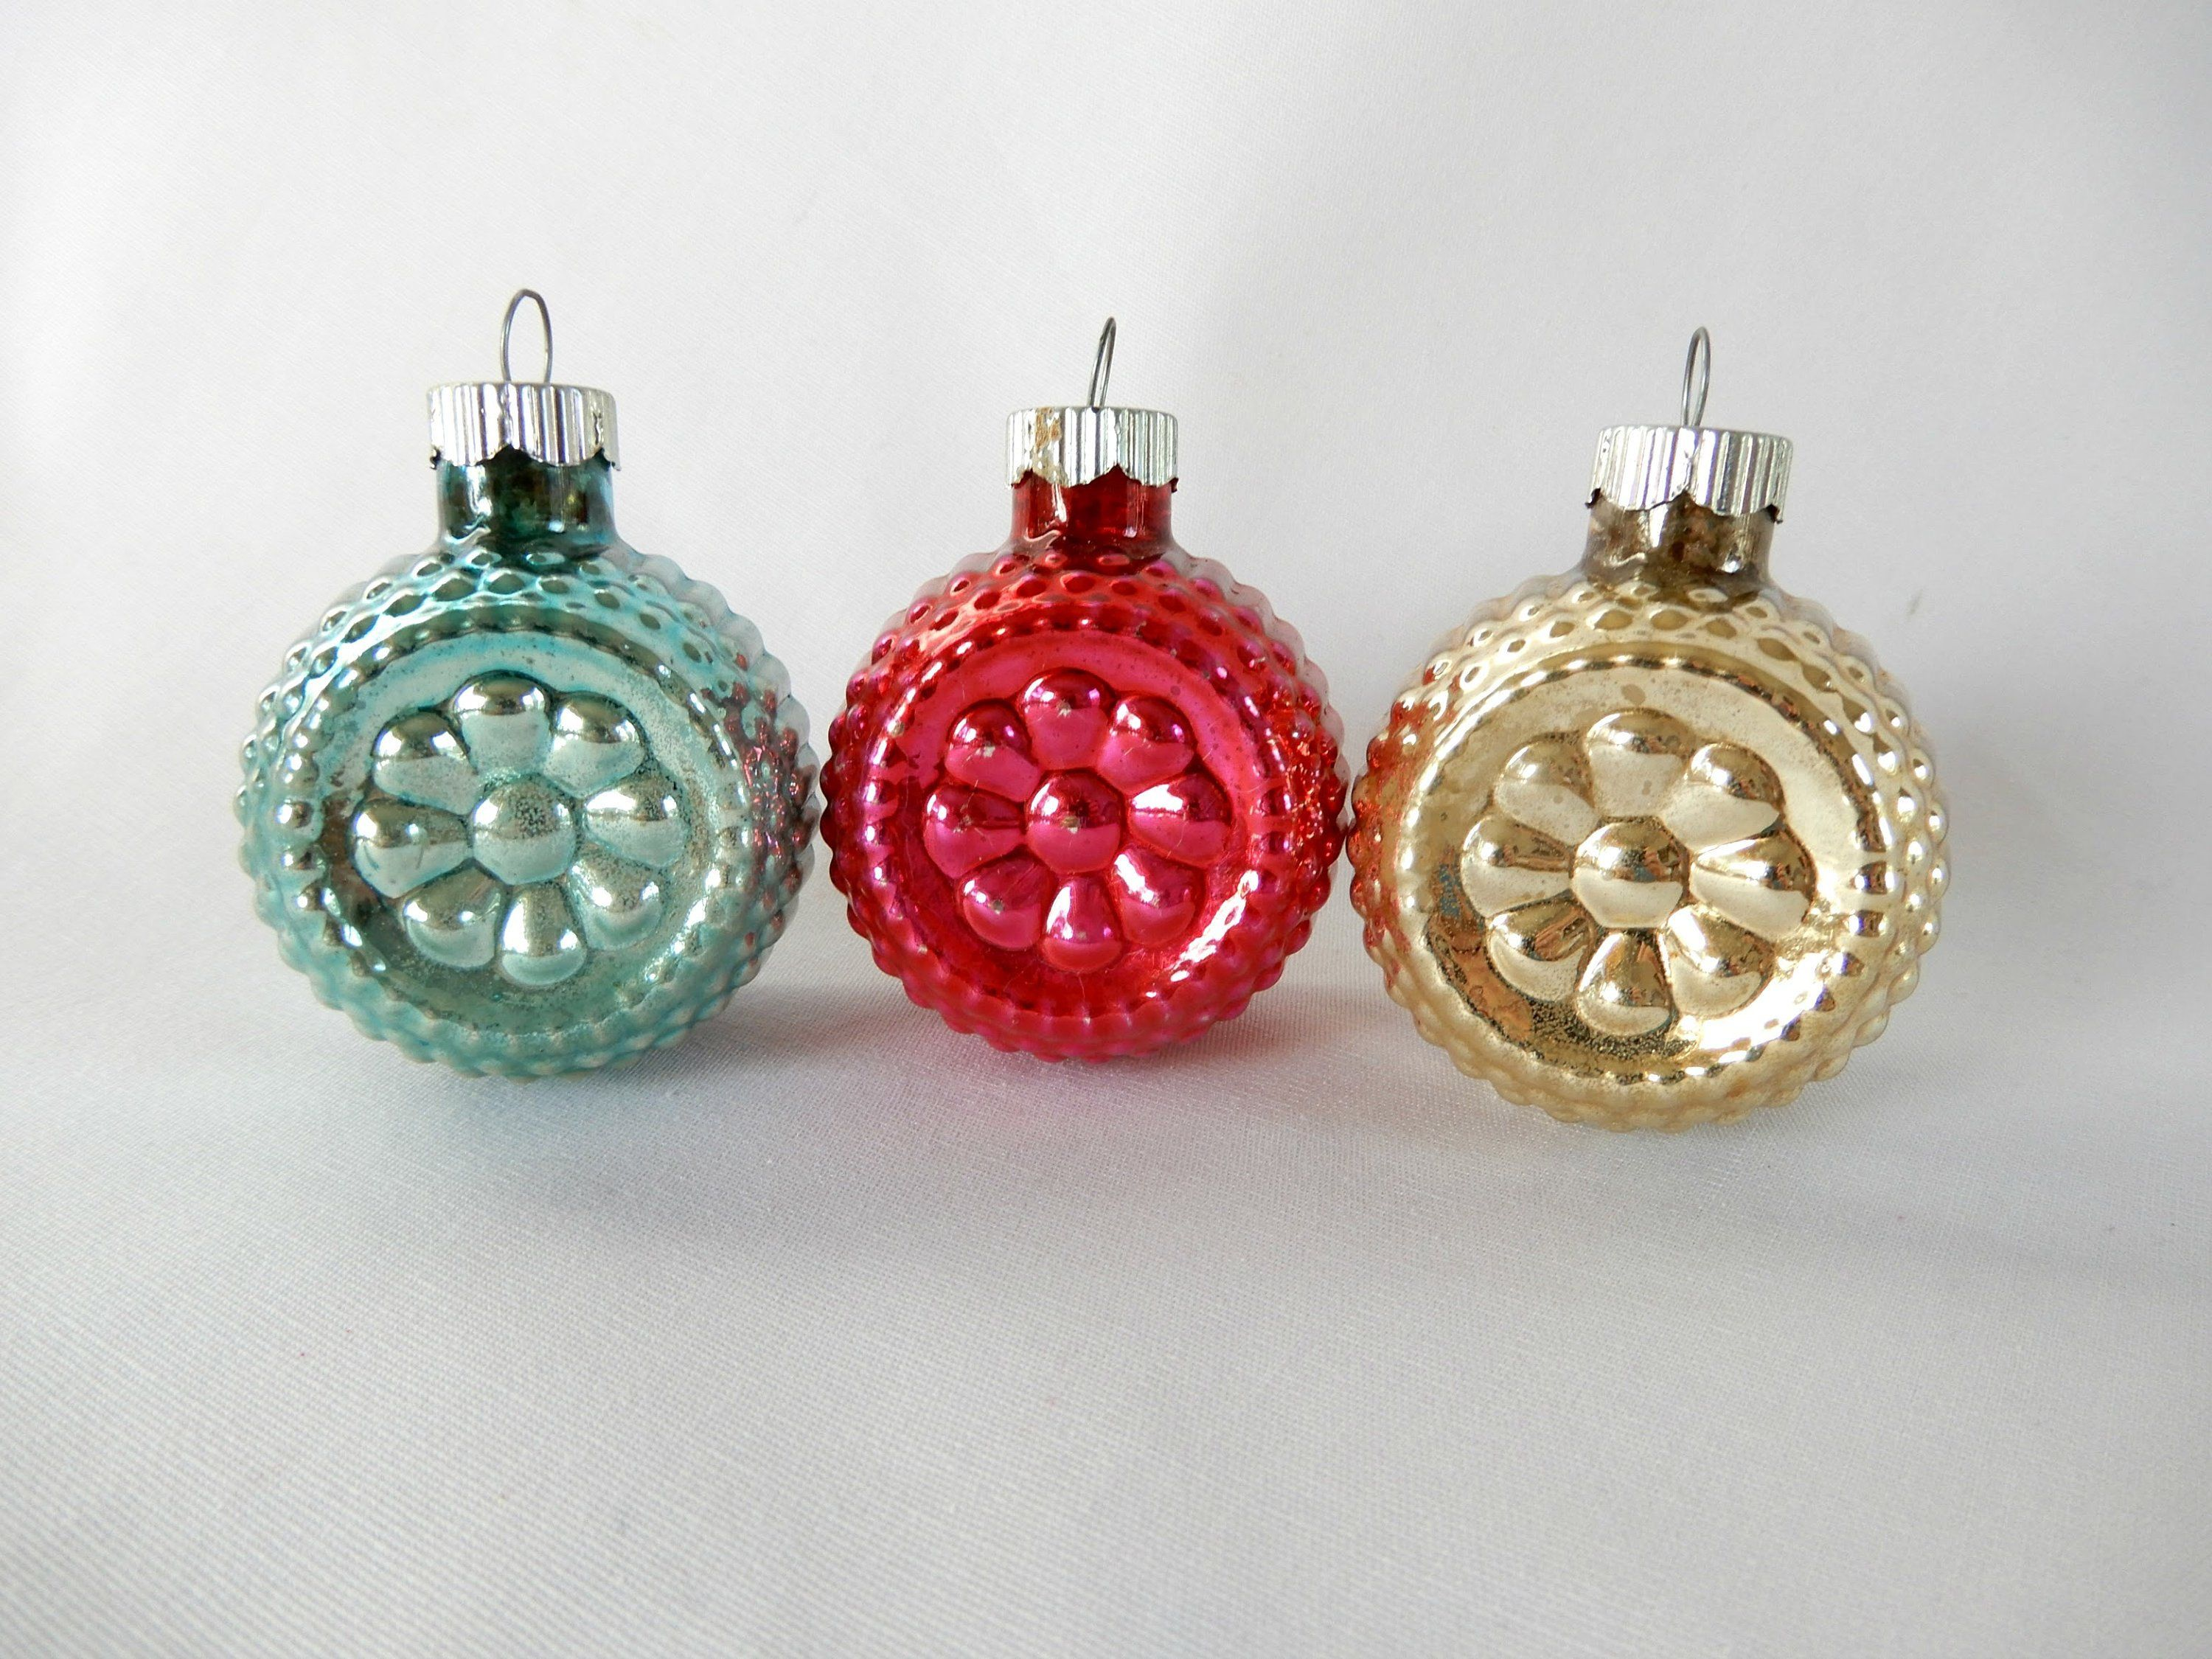 Vintage Glass Ornaments 3 Pc Red Aqua Gold Made In Usa Small Christmas Decor Collectibles Glass Ornaments Christmas Decorations How To Make Notes